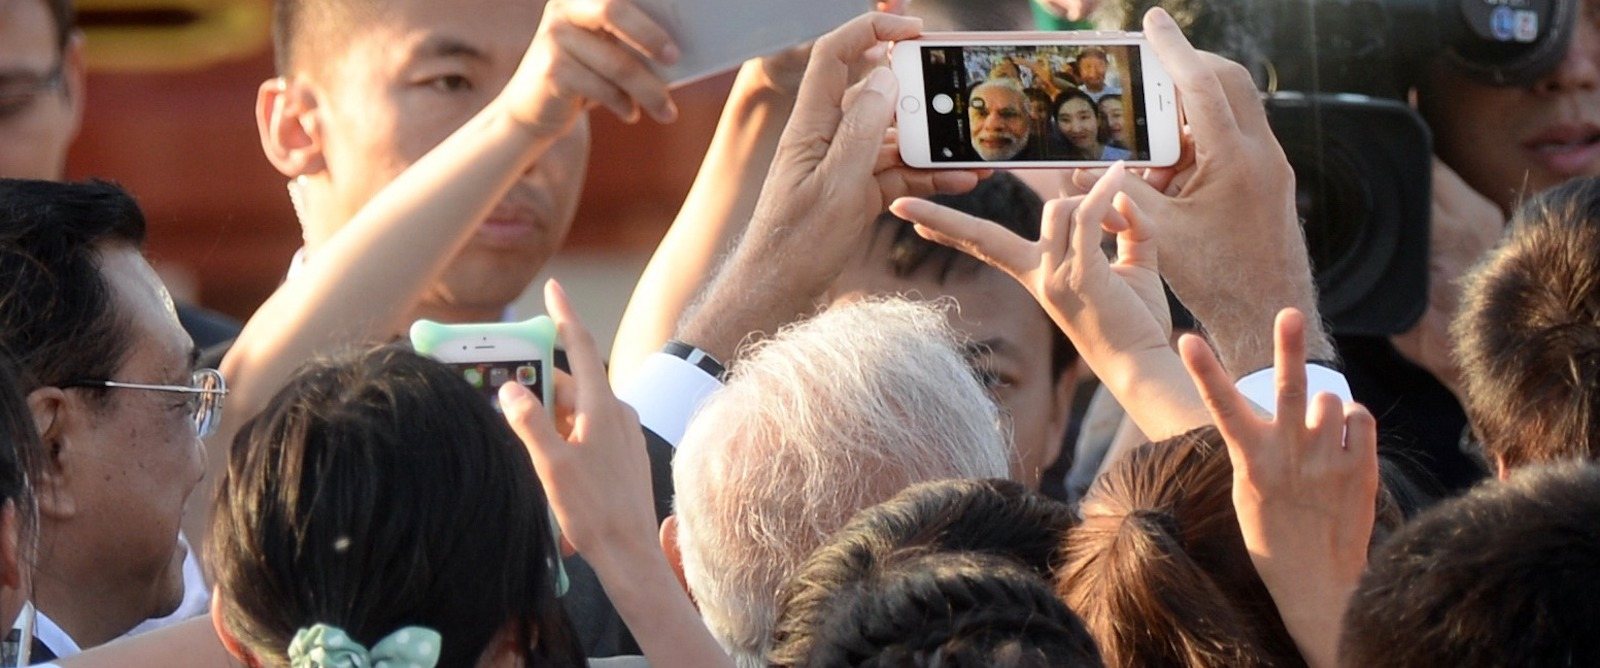 Modi's use of social media is revolutionary (Photo: Kenzaburo Fukuhara via Getty)